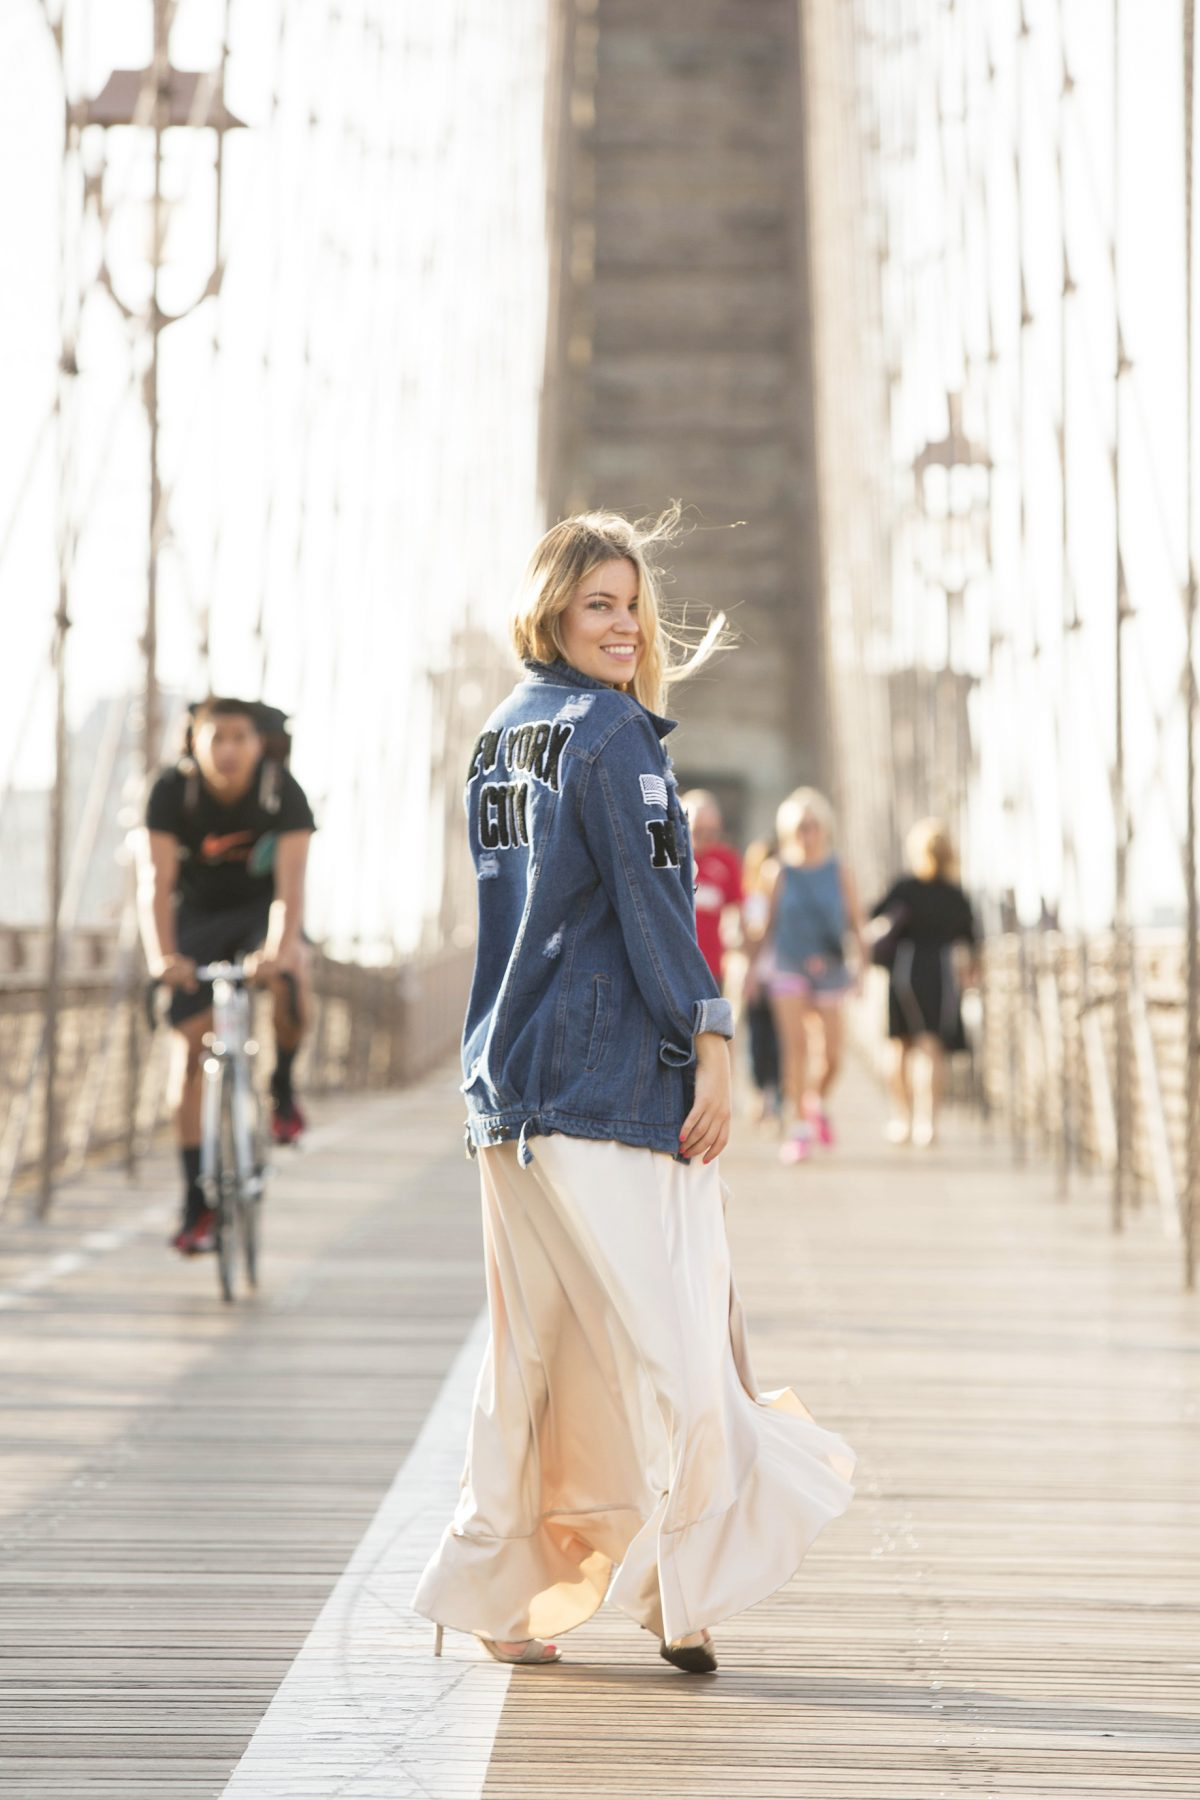 Brooklyn Bridge morning photo shoot SF blogger Shenska